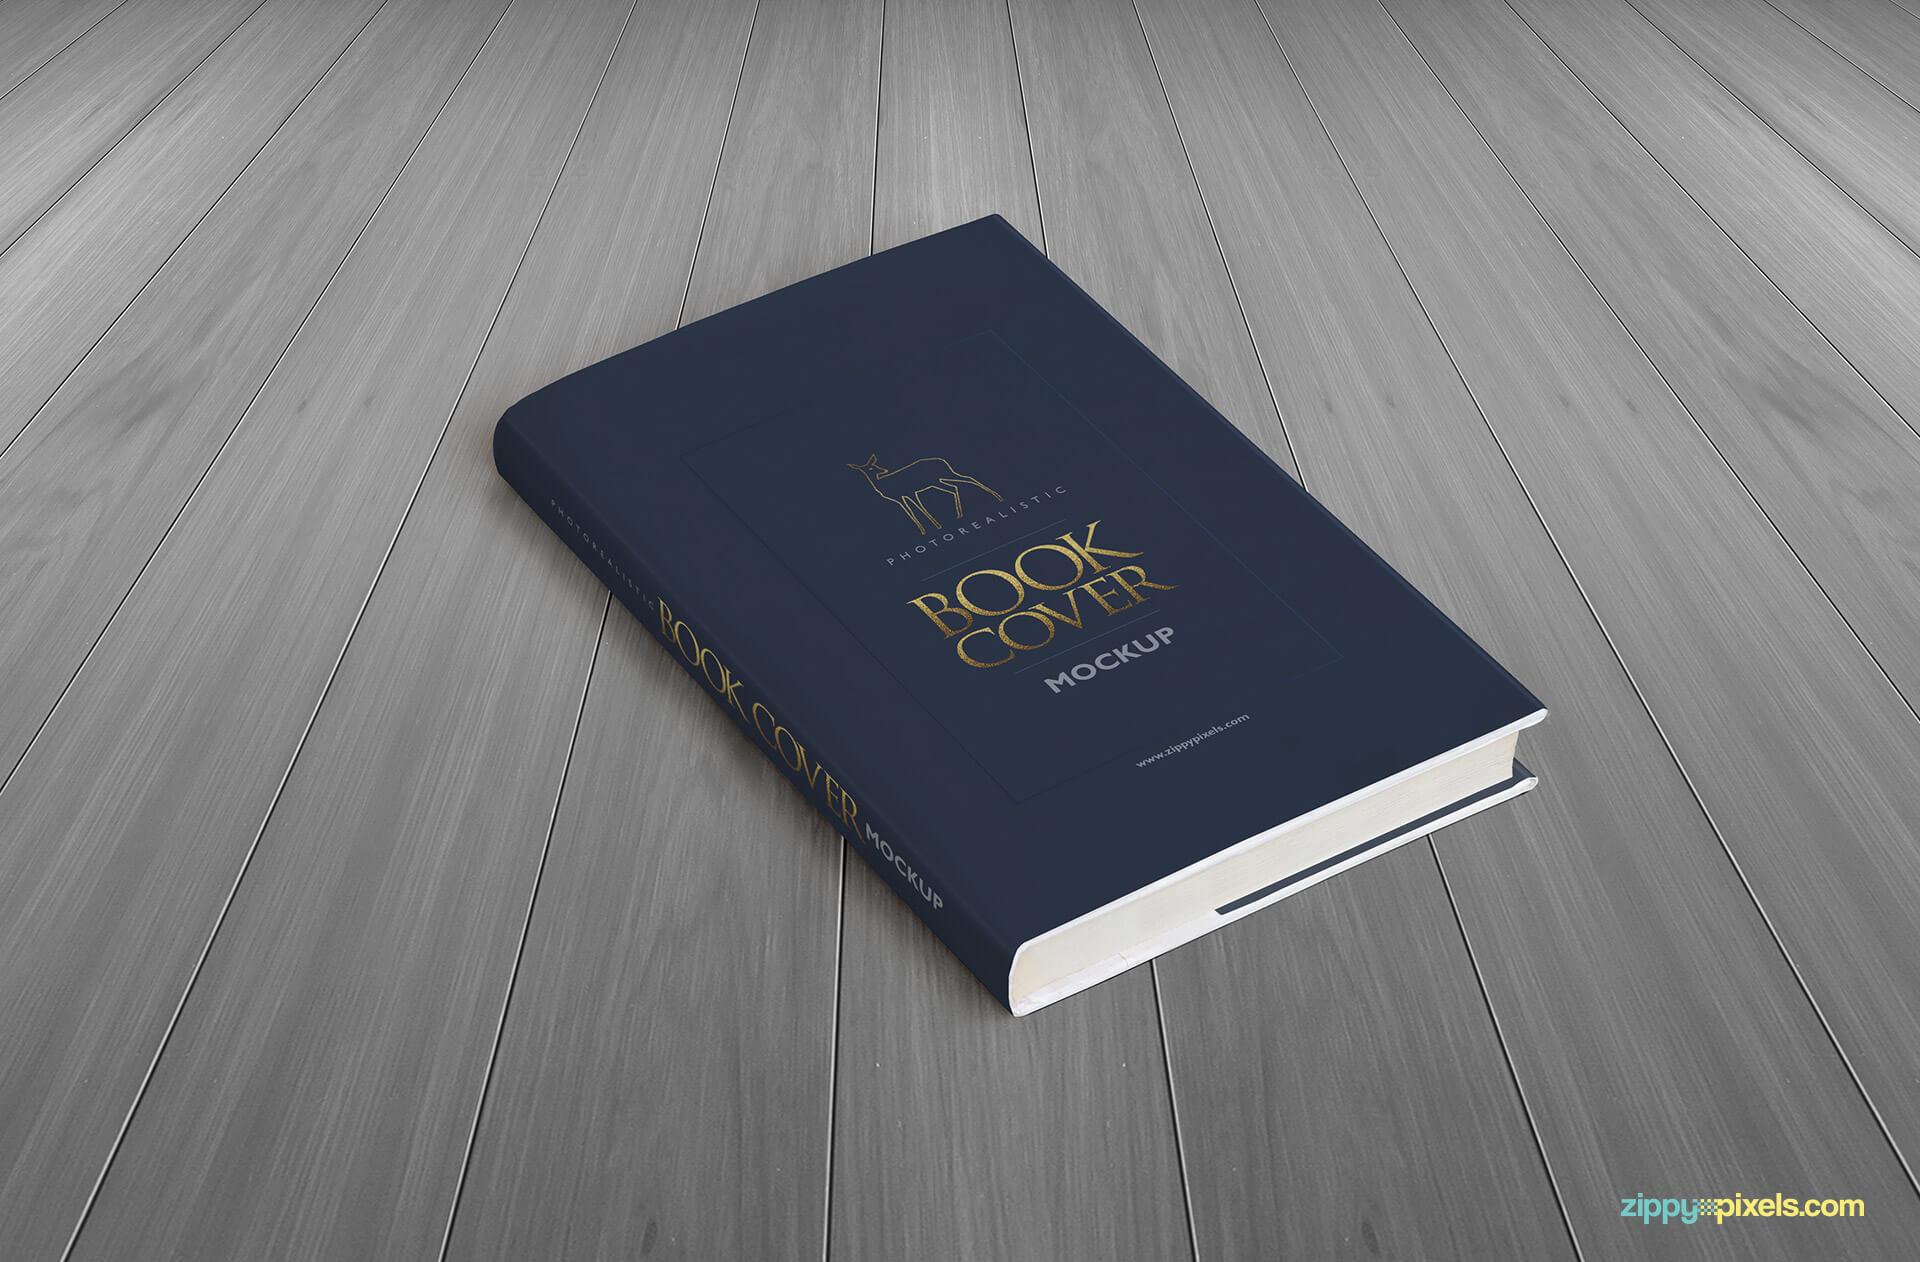 Hardcover book mockup showing high angle view of hardcover book with dust cover